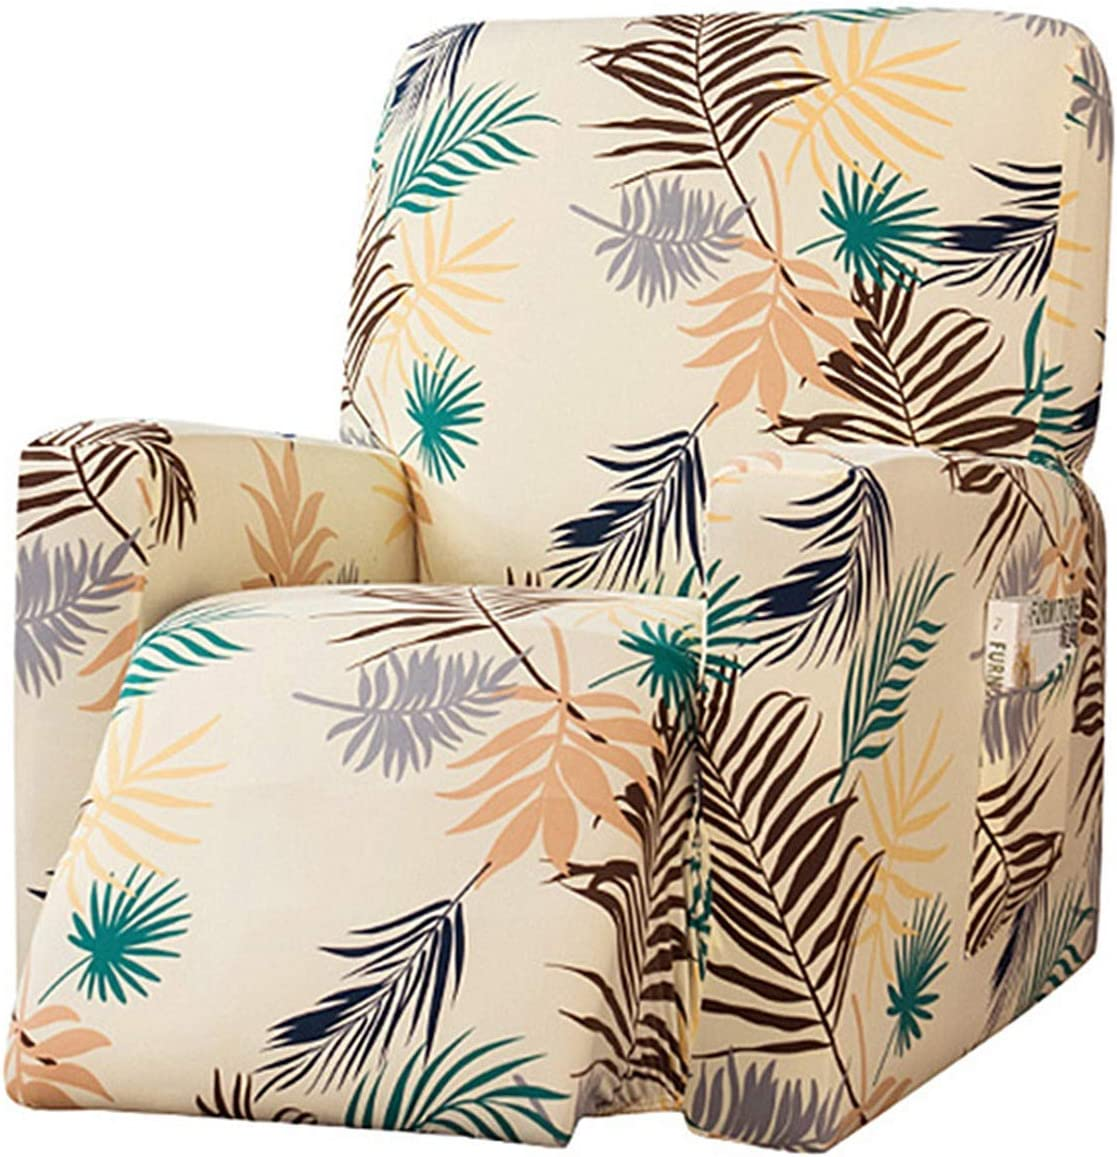 MJL Stretch Recliner Slipcovers with Side Pockets Printed Recliner Chair Covers for Lazy Boy Furniture Protector for Living Room Armchair #2 One Size